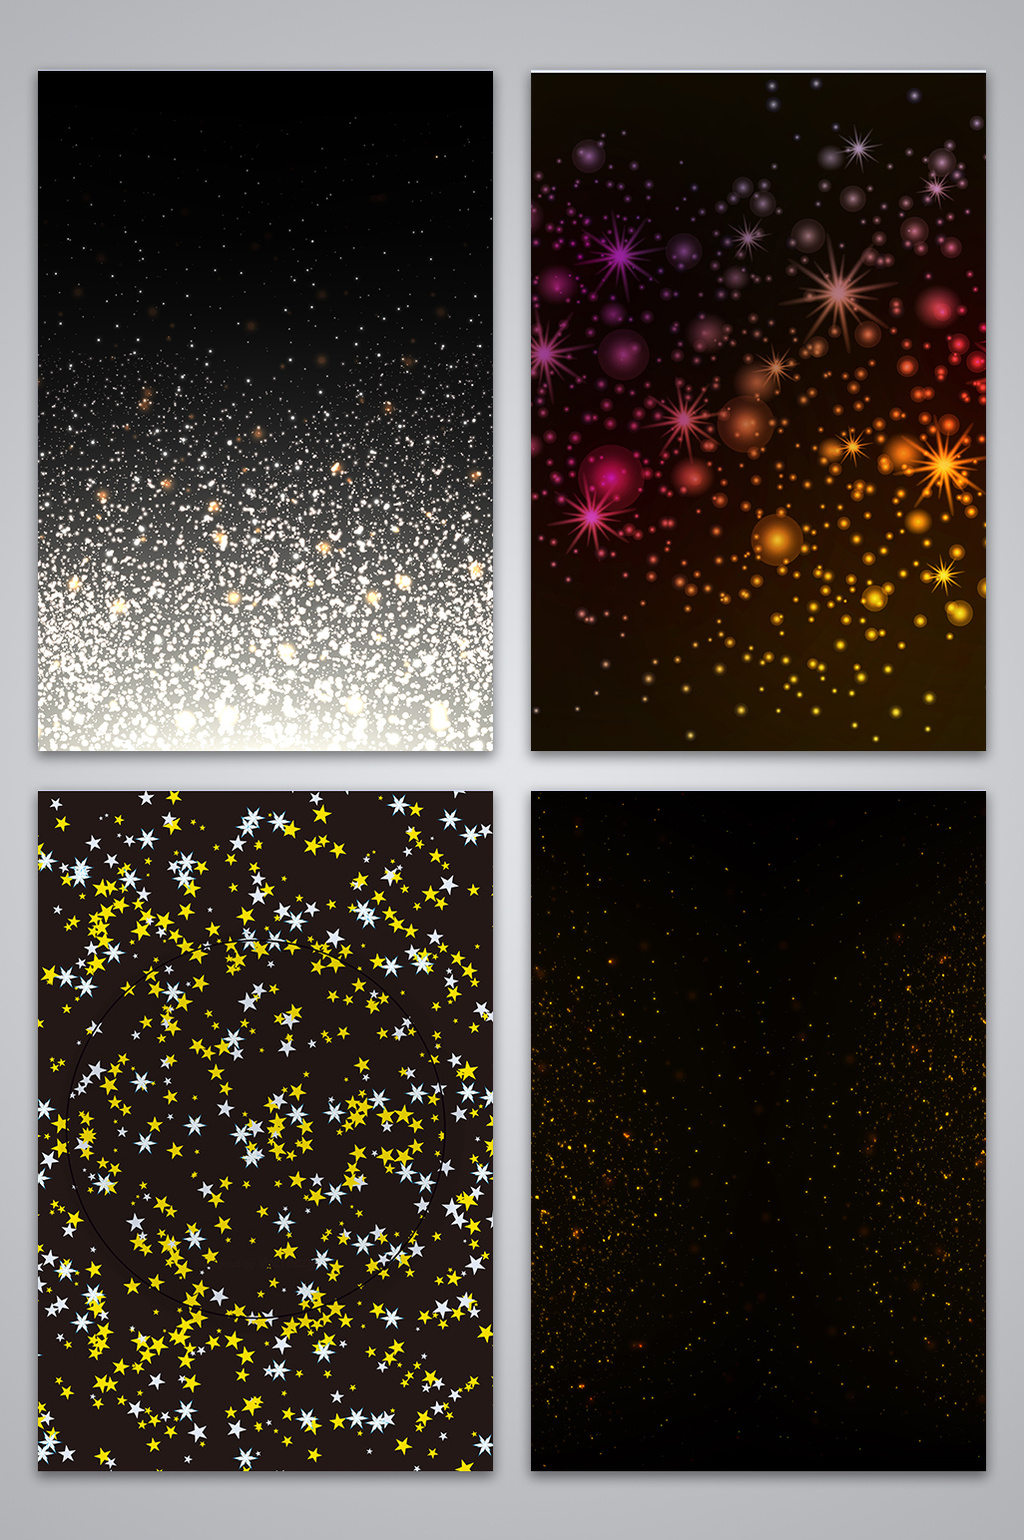 1024x1540 Starry Universe Vector Design Background Image Free Download Pikbest